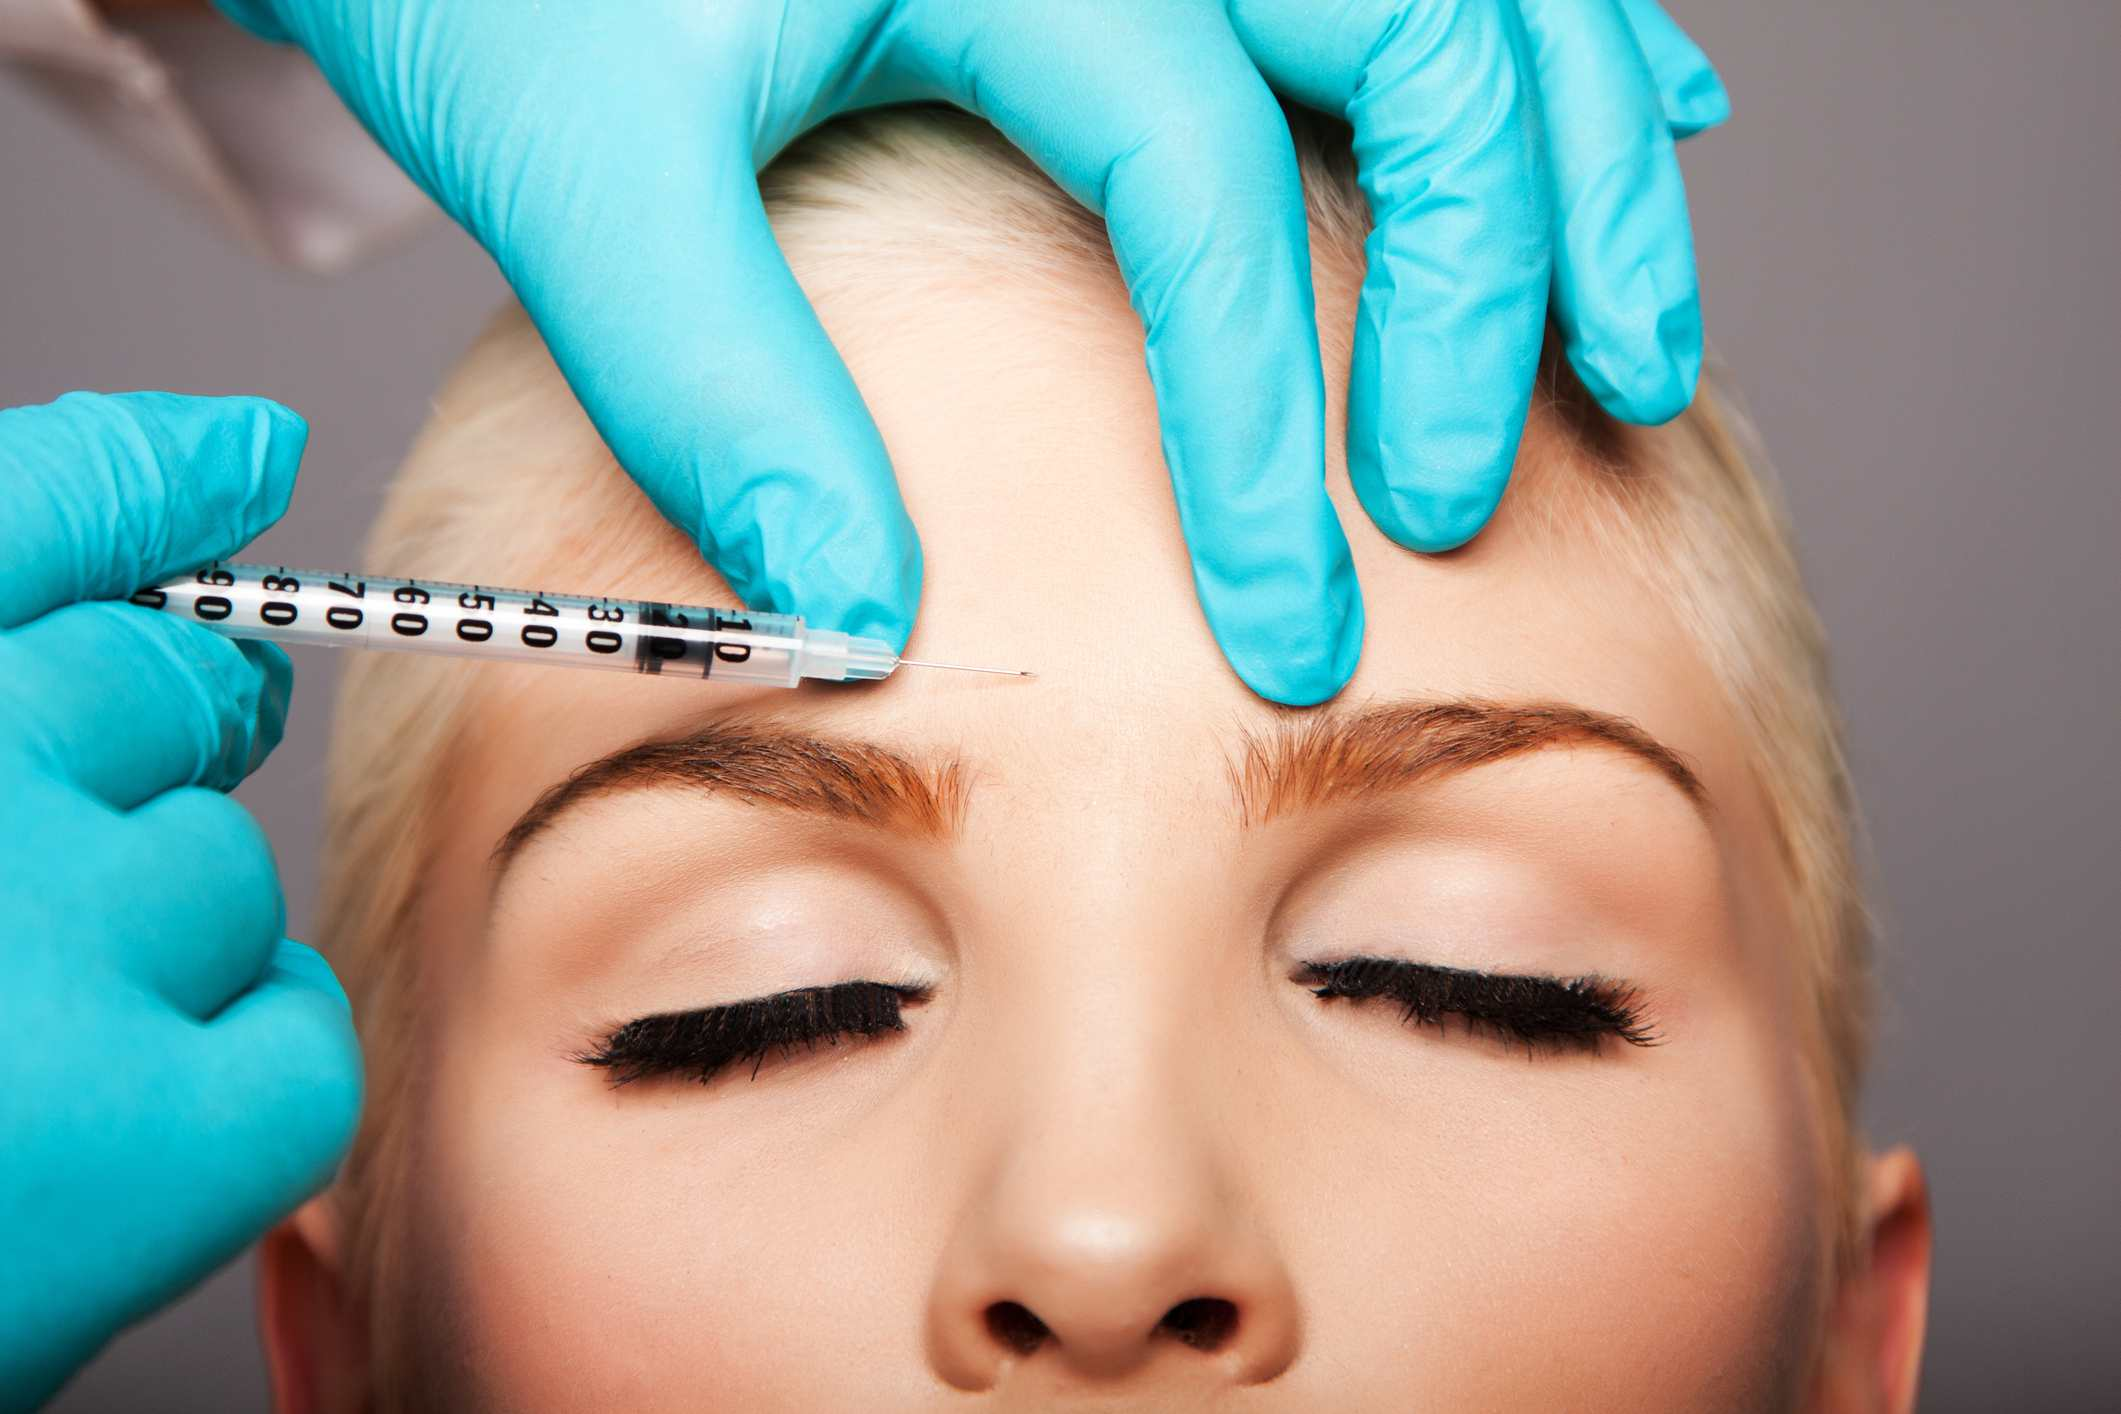 Experts Explain the Long-Term Effects of Botox